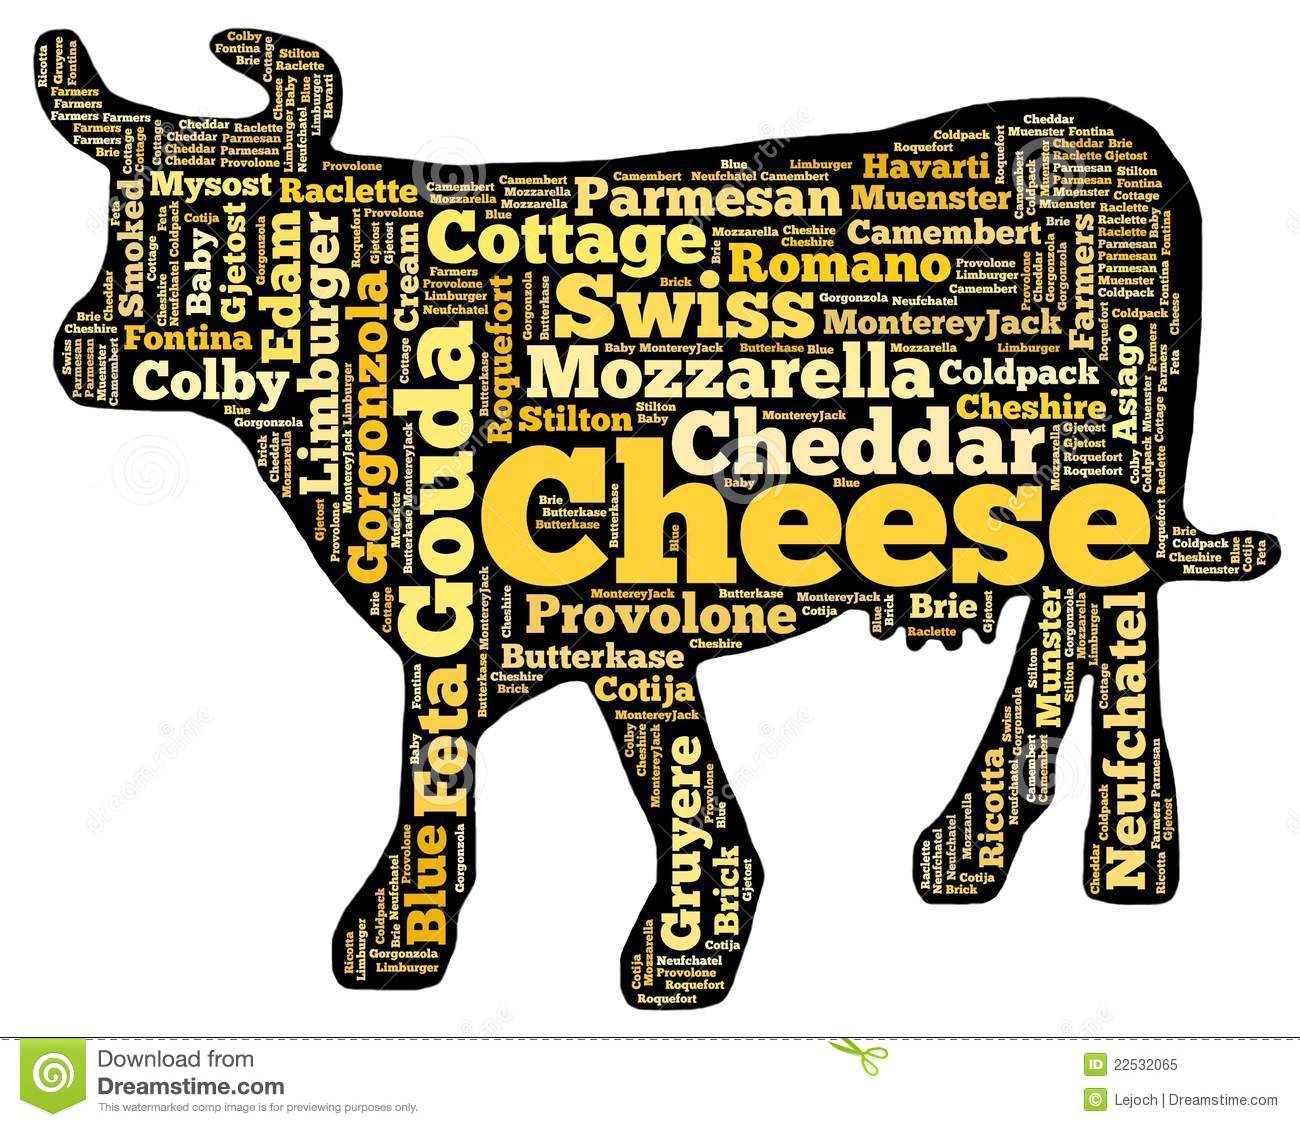 Cheese cow stock illustration  Illustration of meal, eating